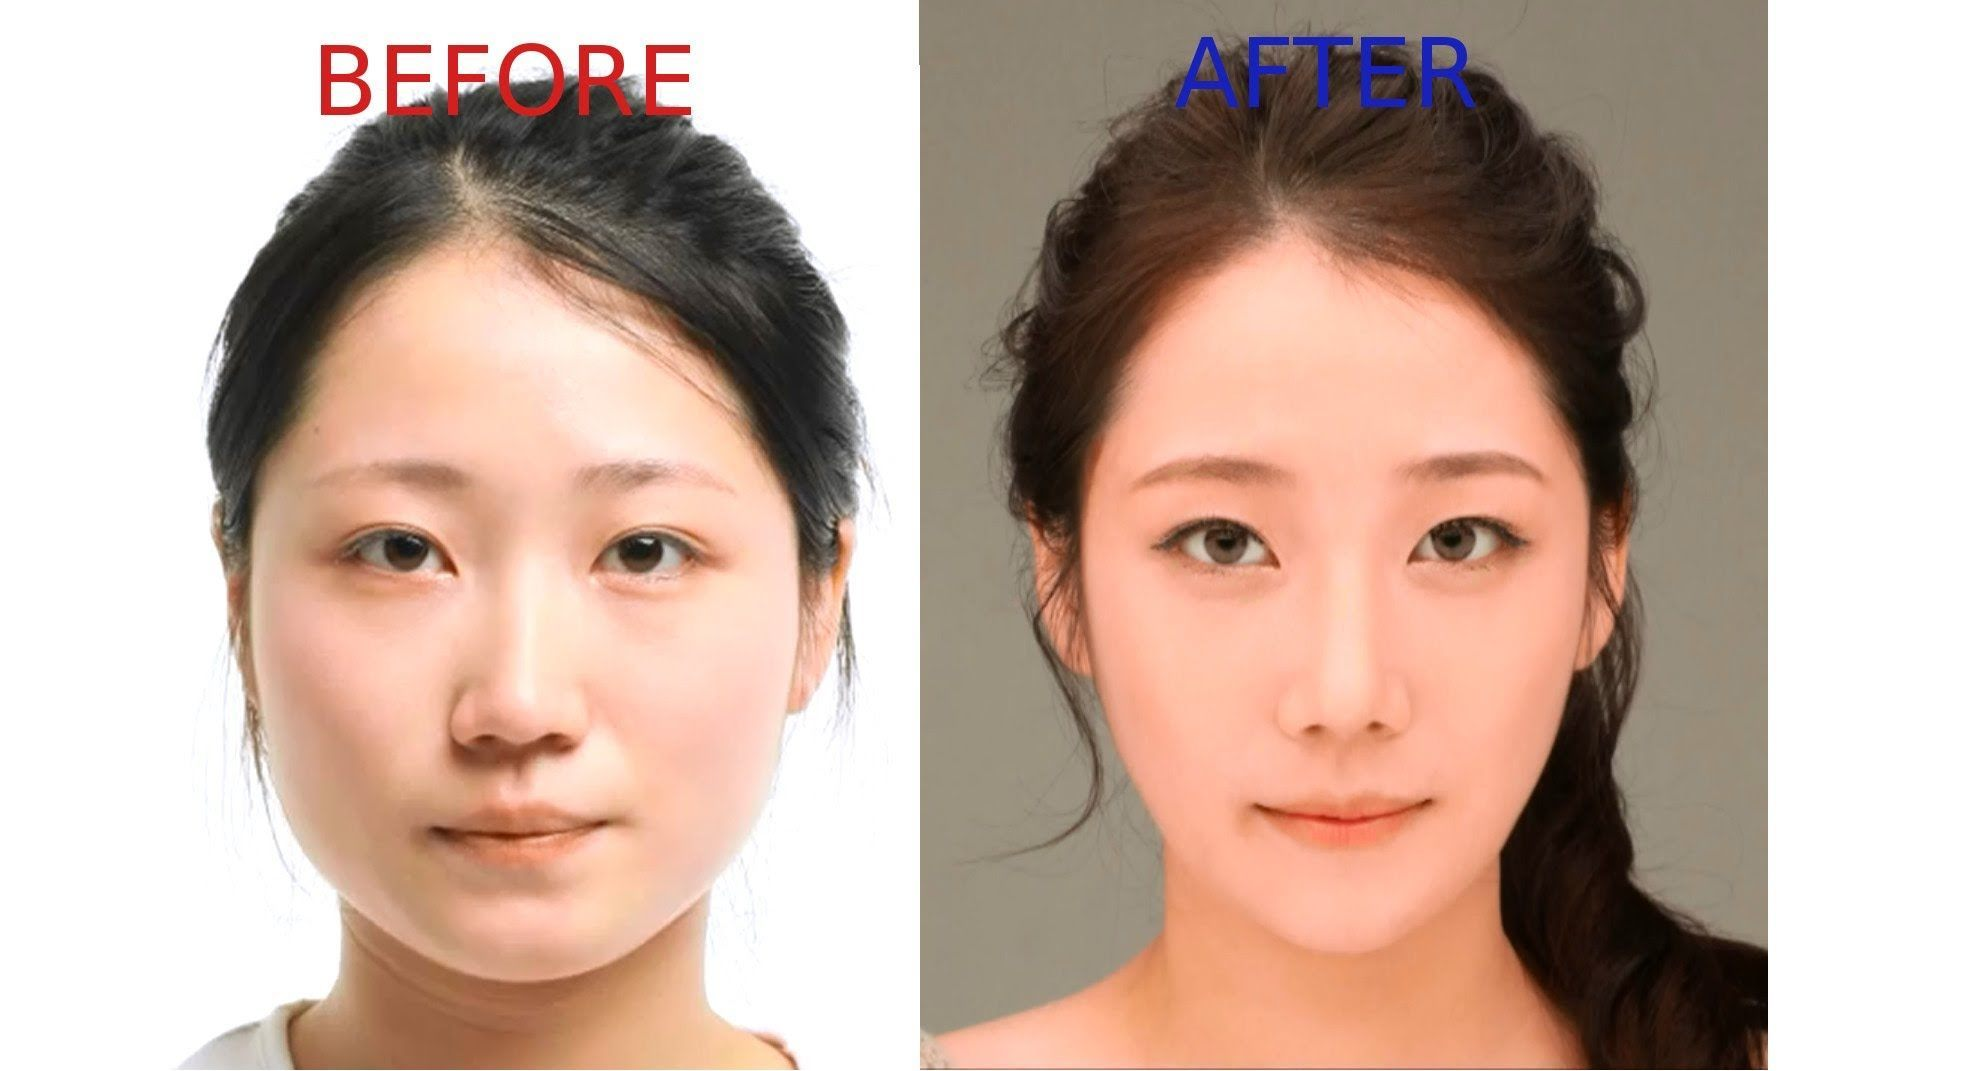 8 Most Popular Plastic Surgery Procedures In Korea